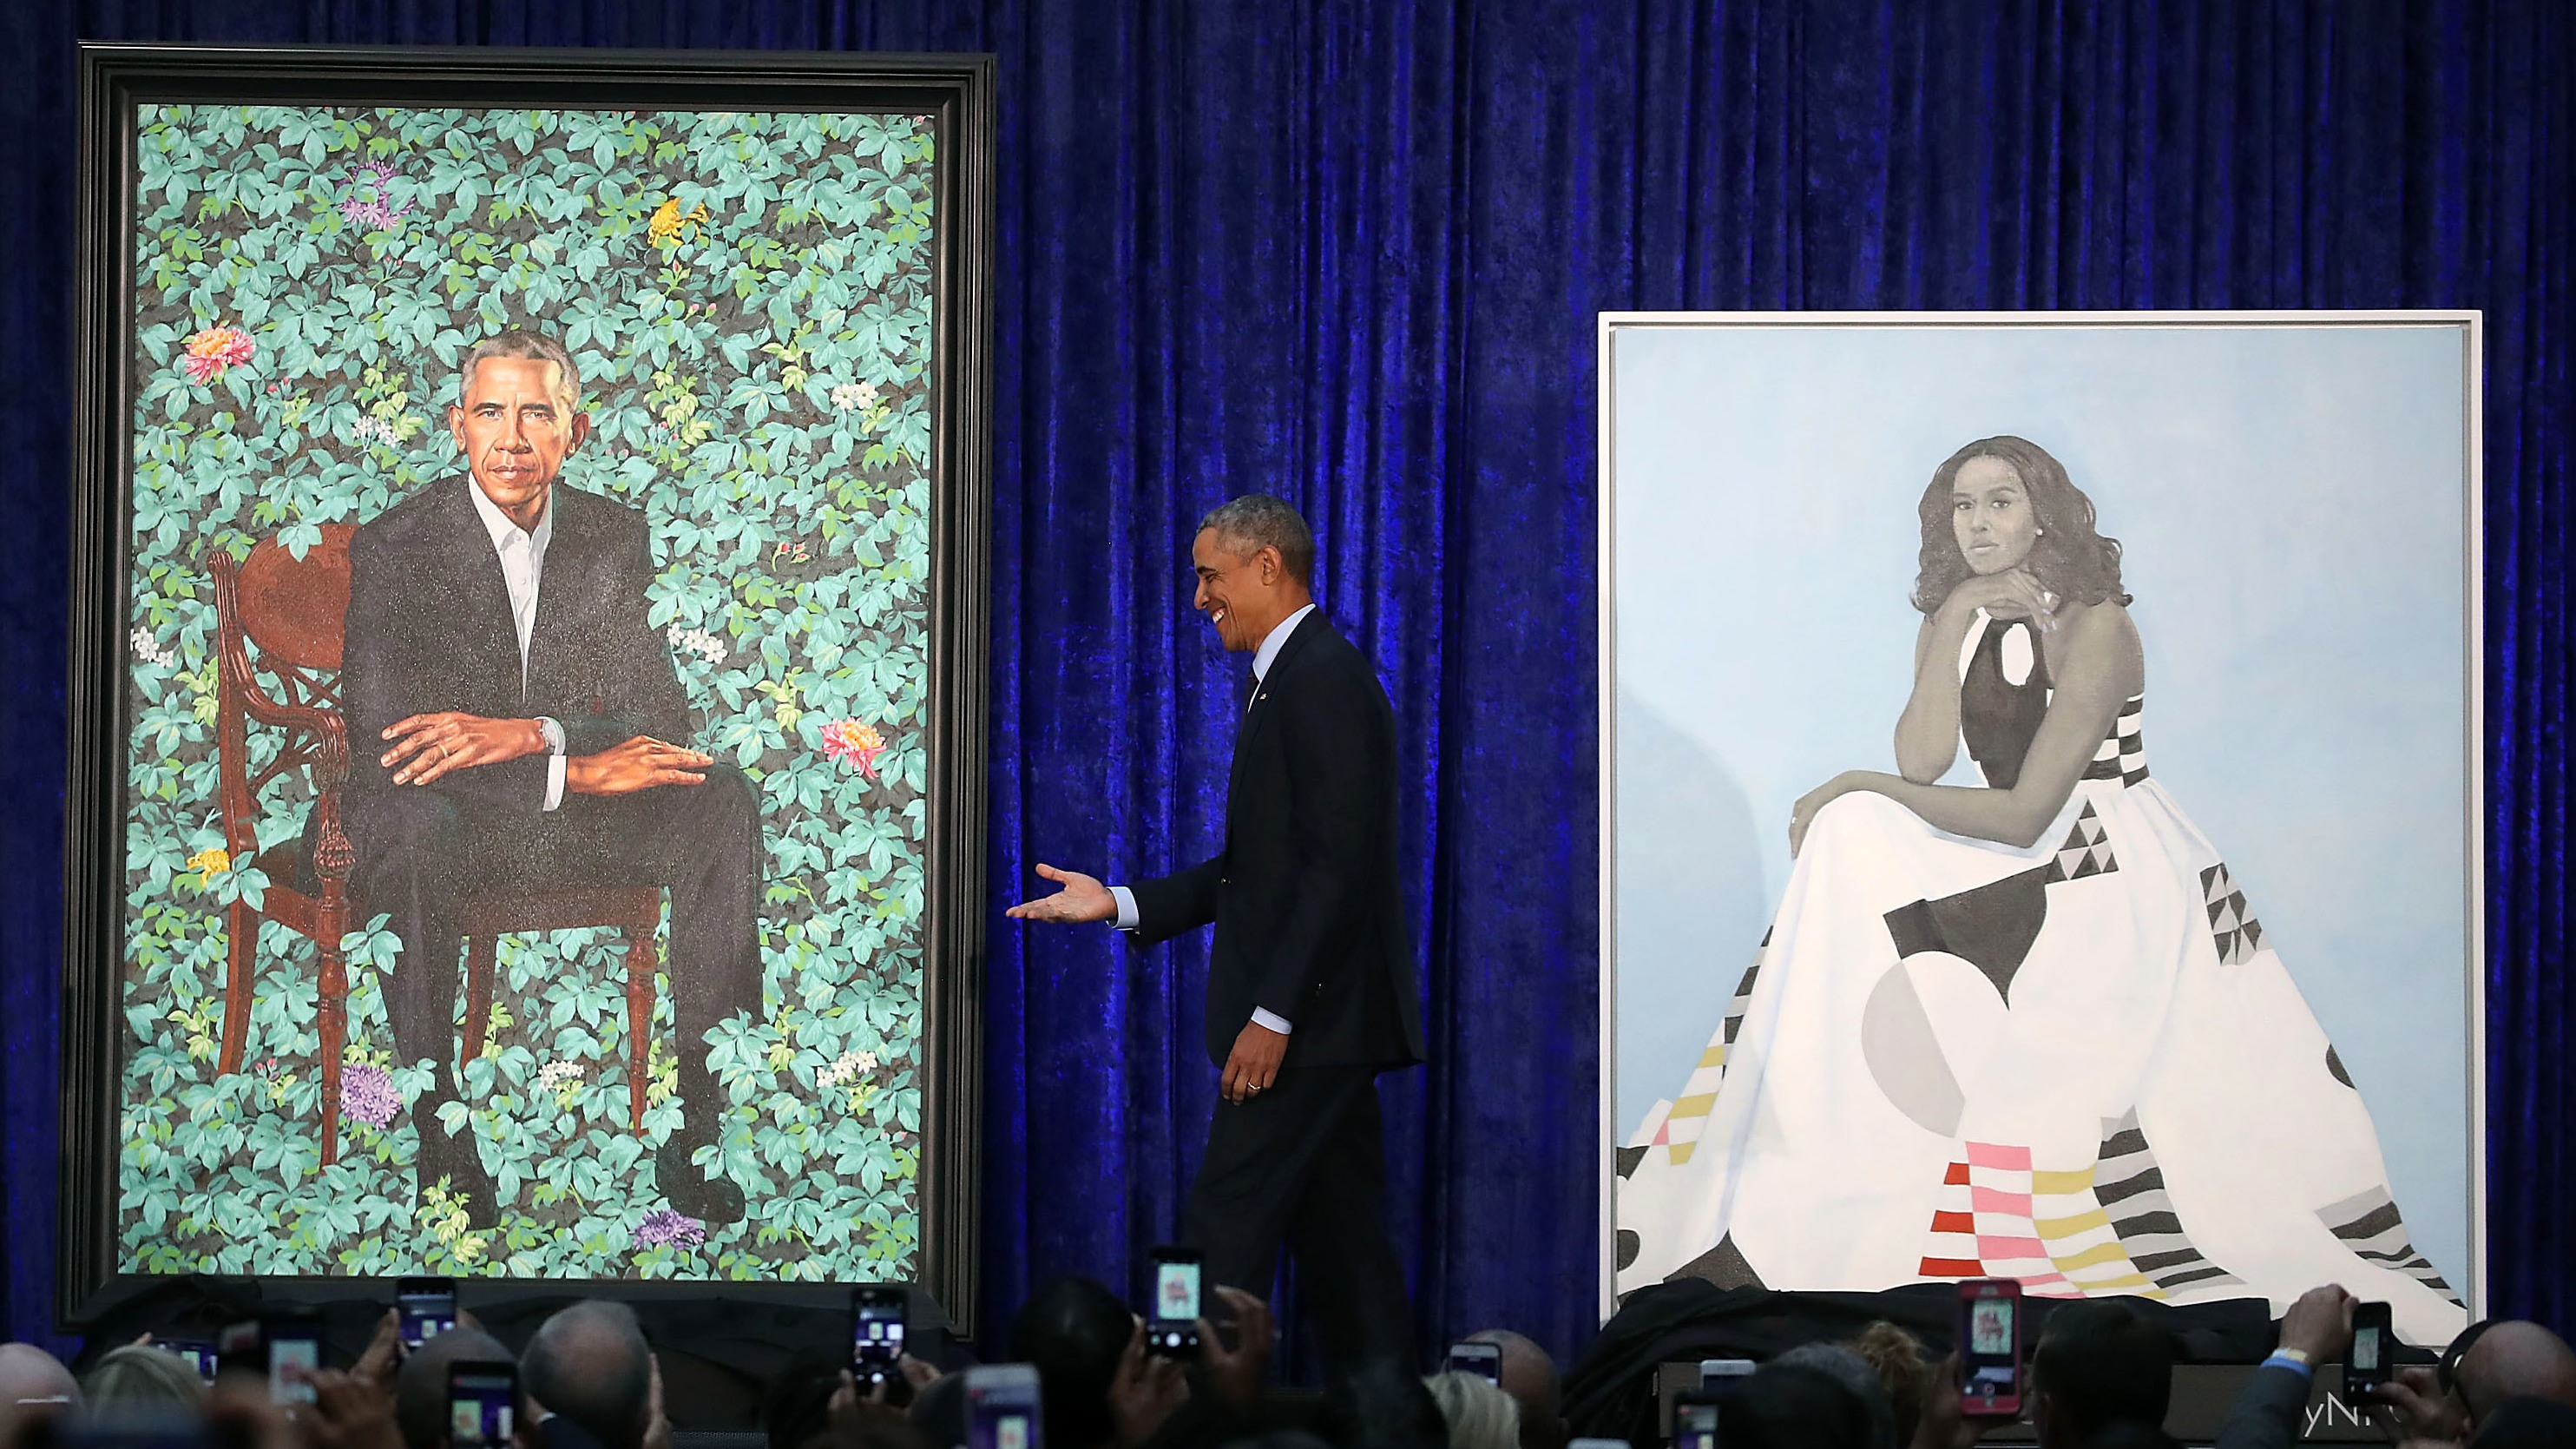 Presidential portraits unveiled from washington to obama